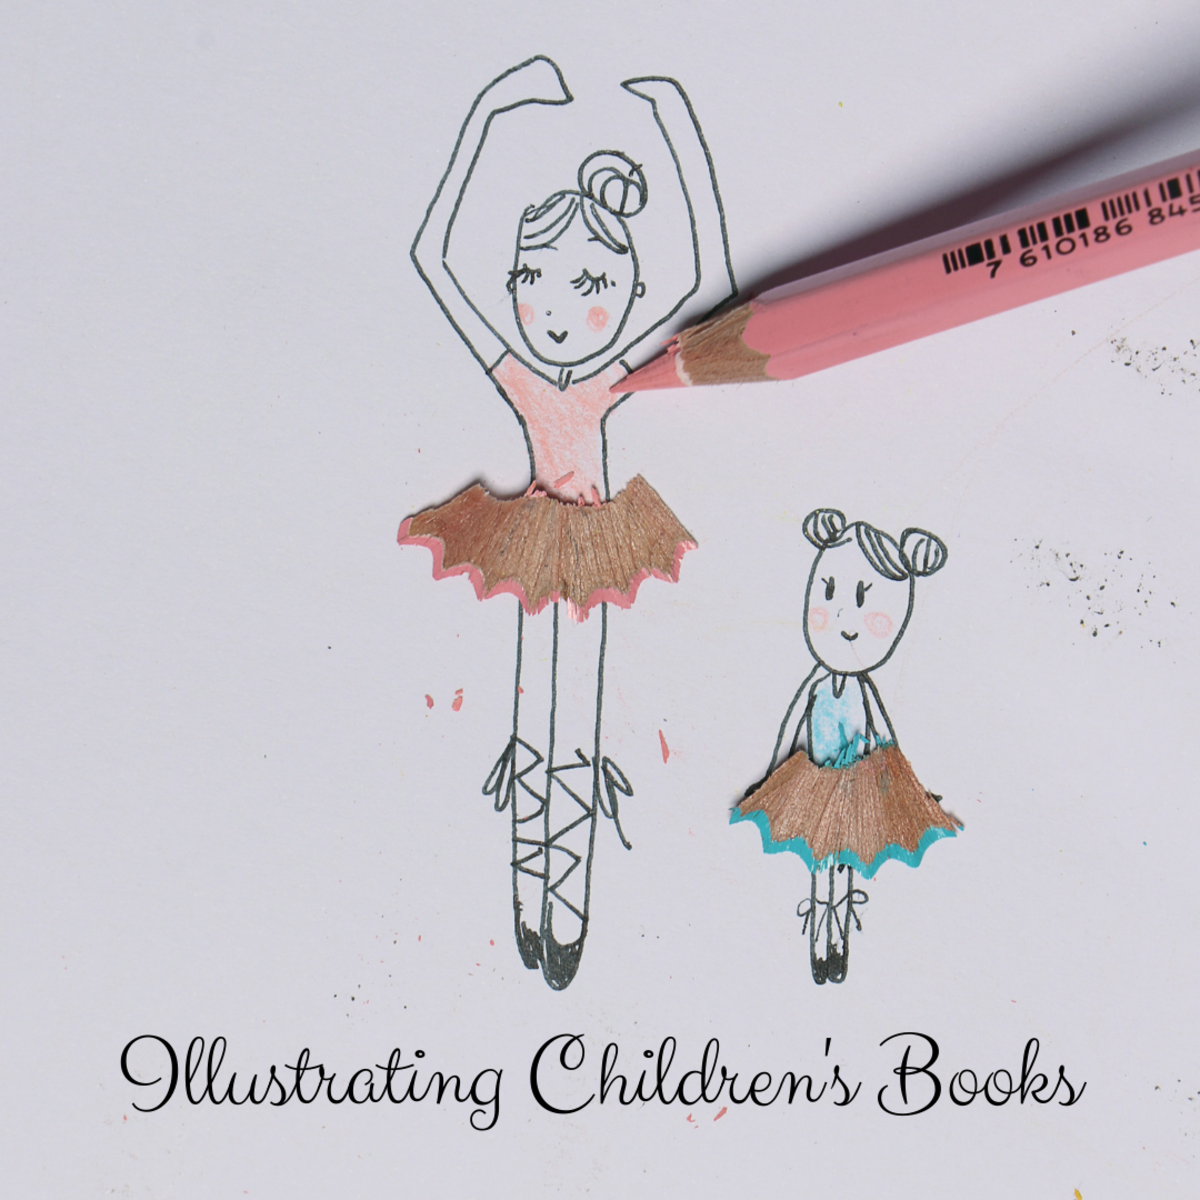 A good illustrator brings the story alive